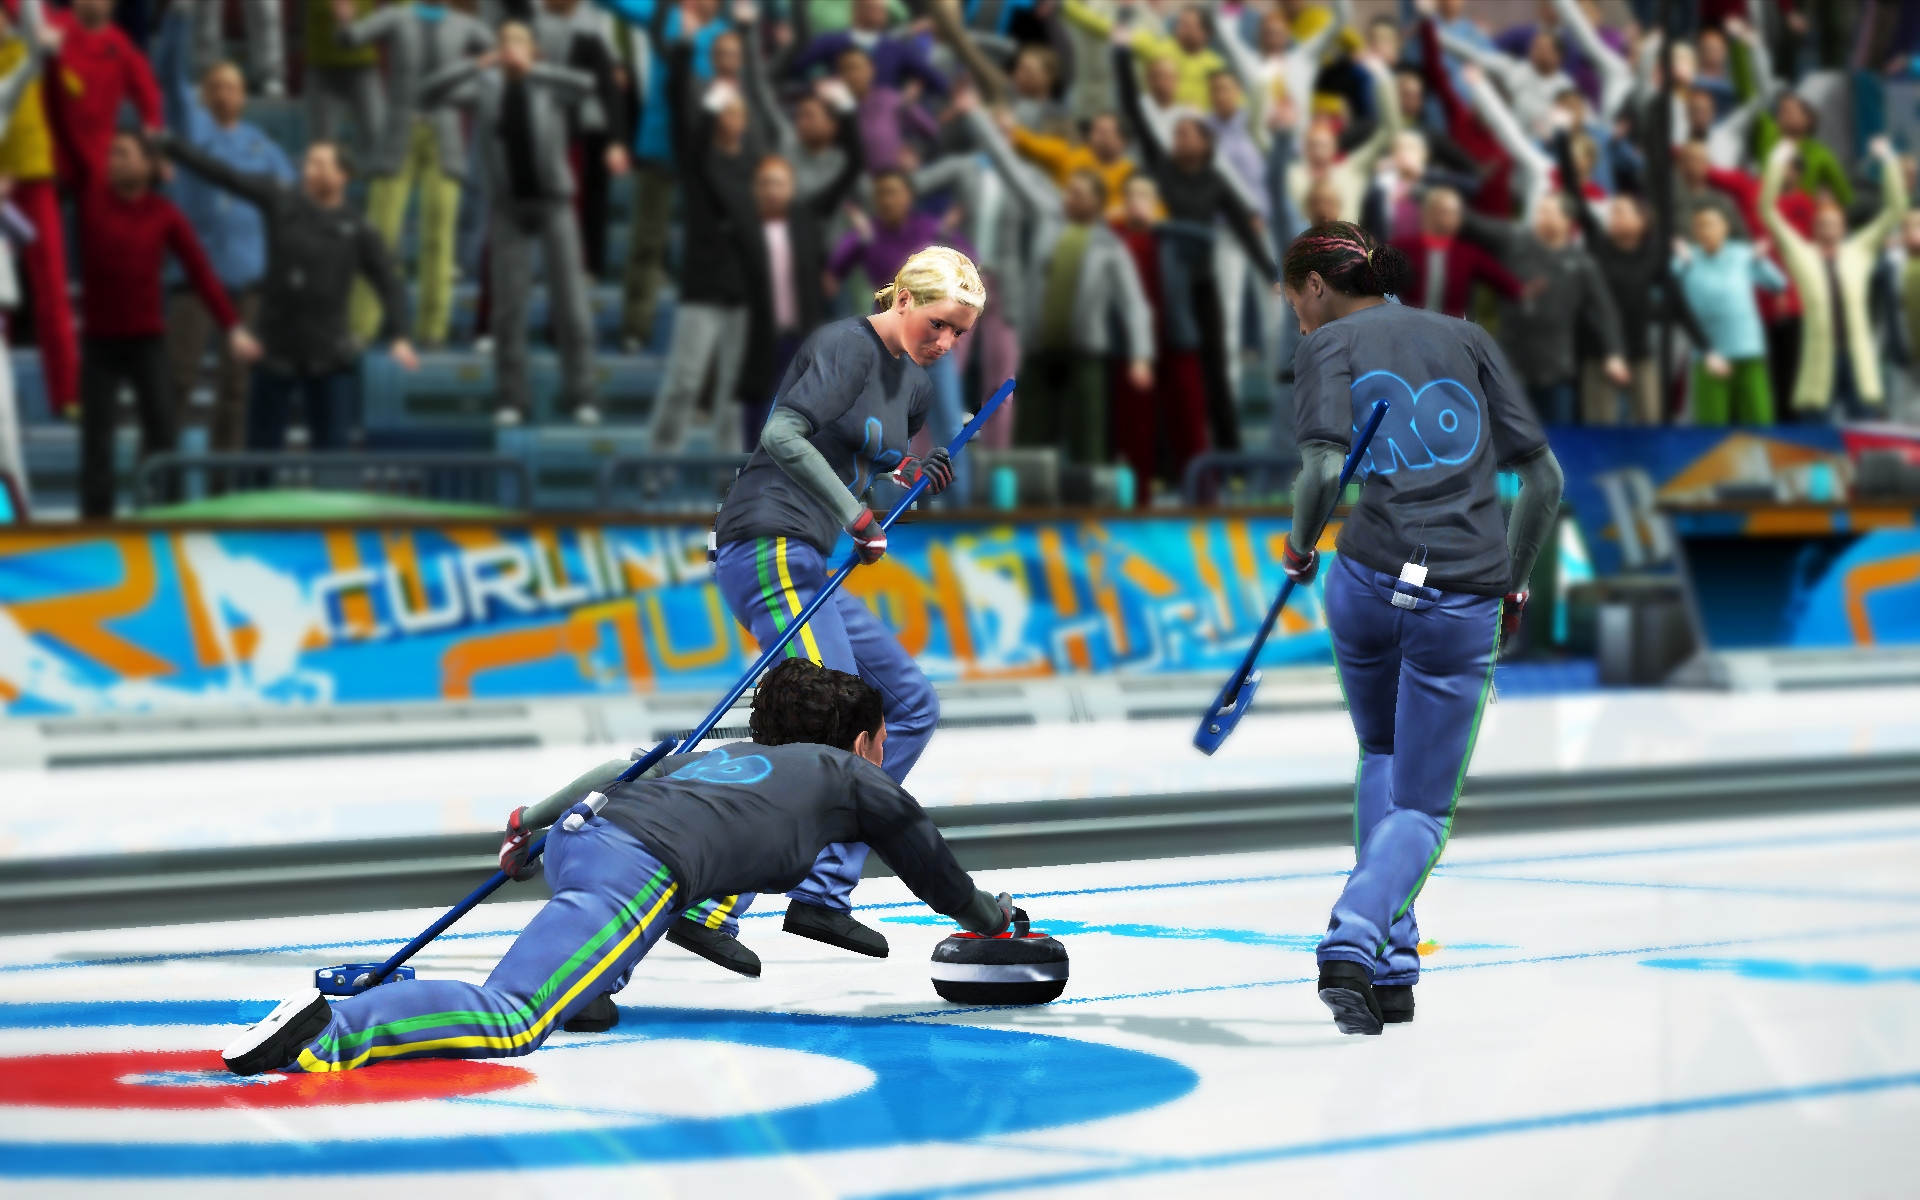 winterstars-all-all-screenshot-gamescom-curling